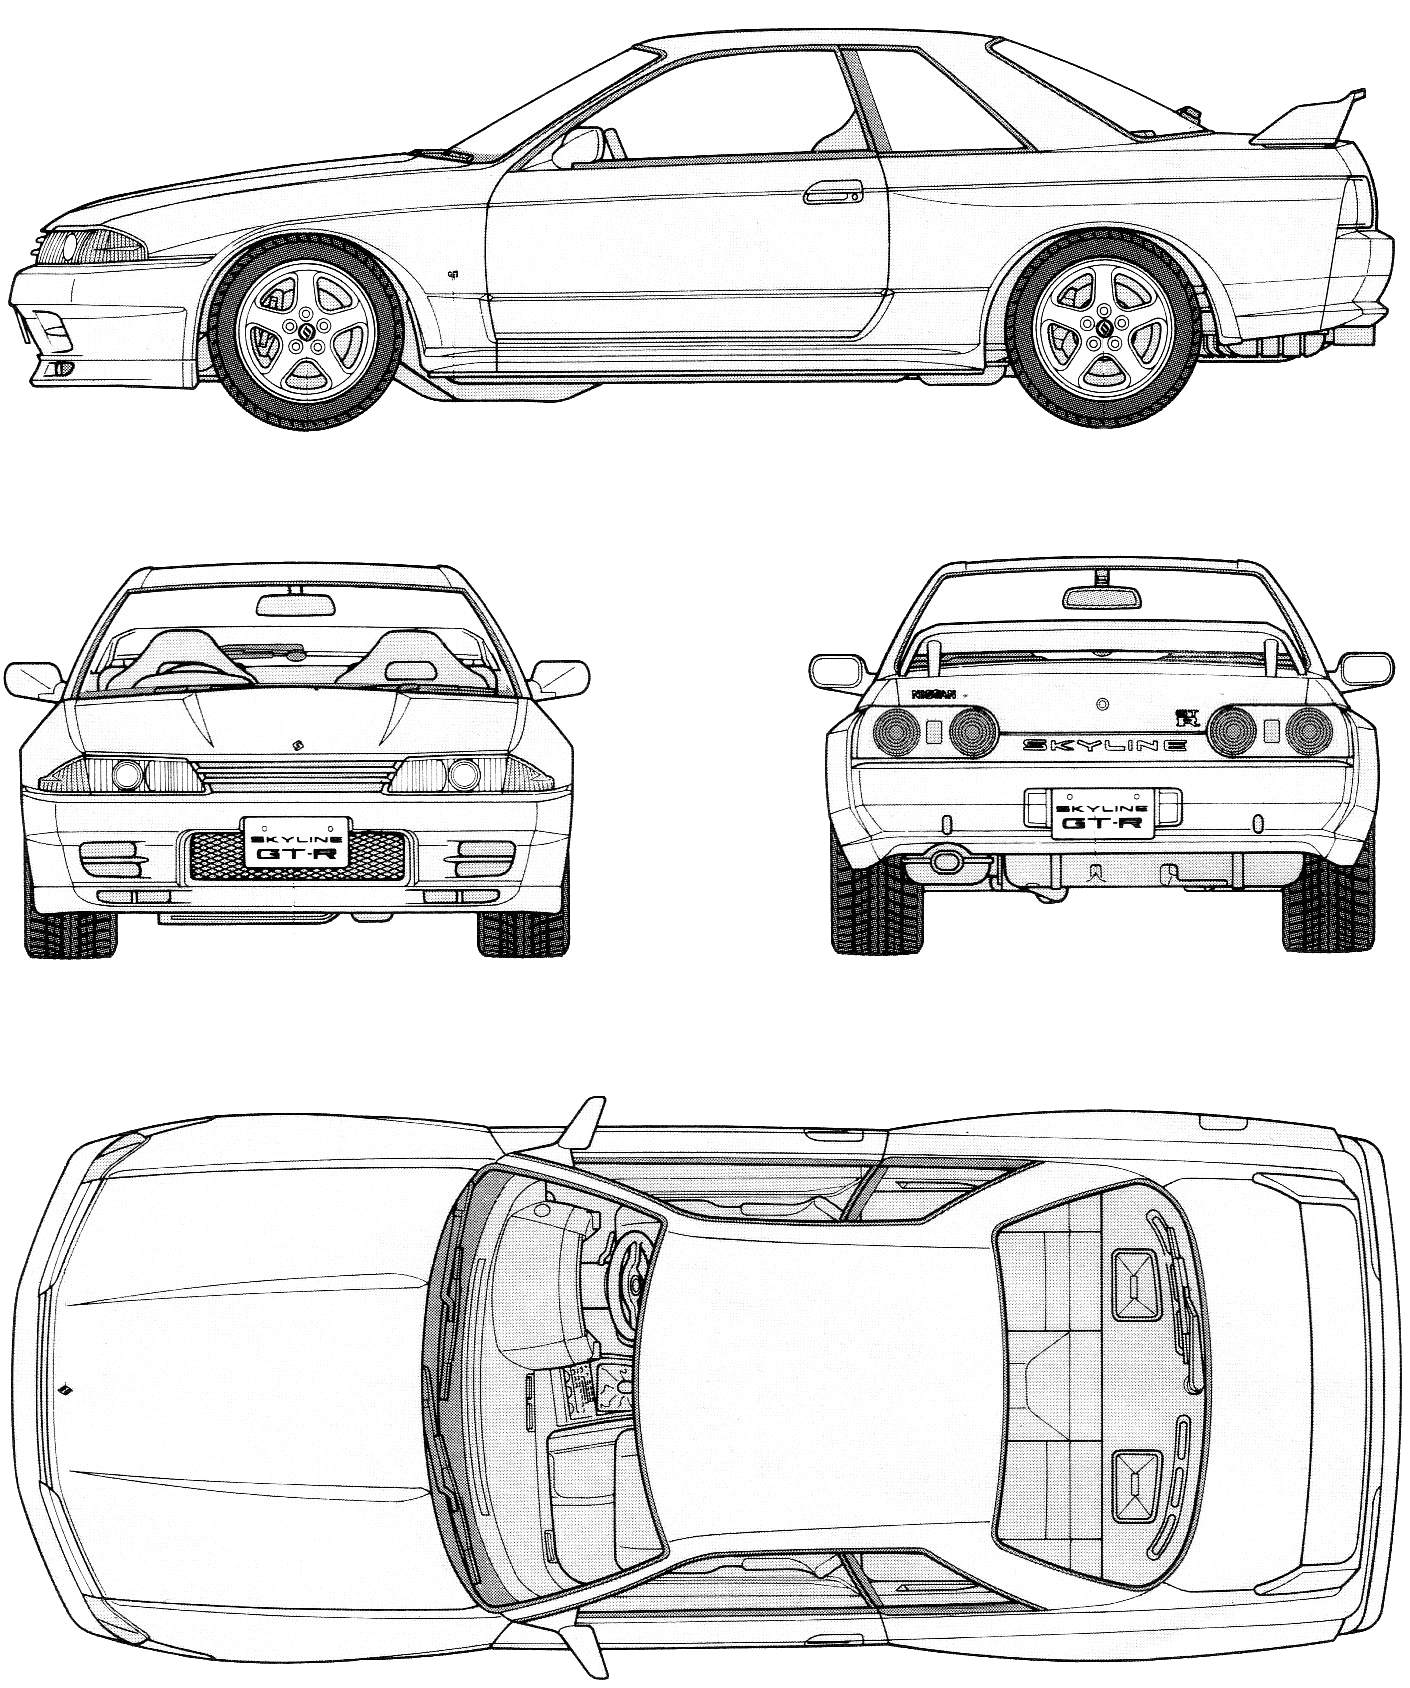 R32 skyline gt r blueprints svasta pinterest r32 skyline r32 skyline gt r blueprints malvernweather Gallery